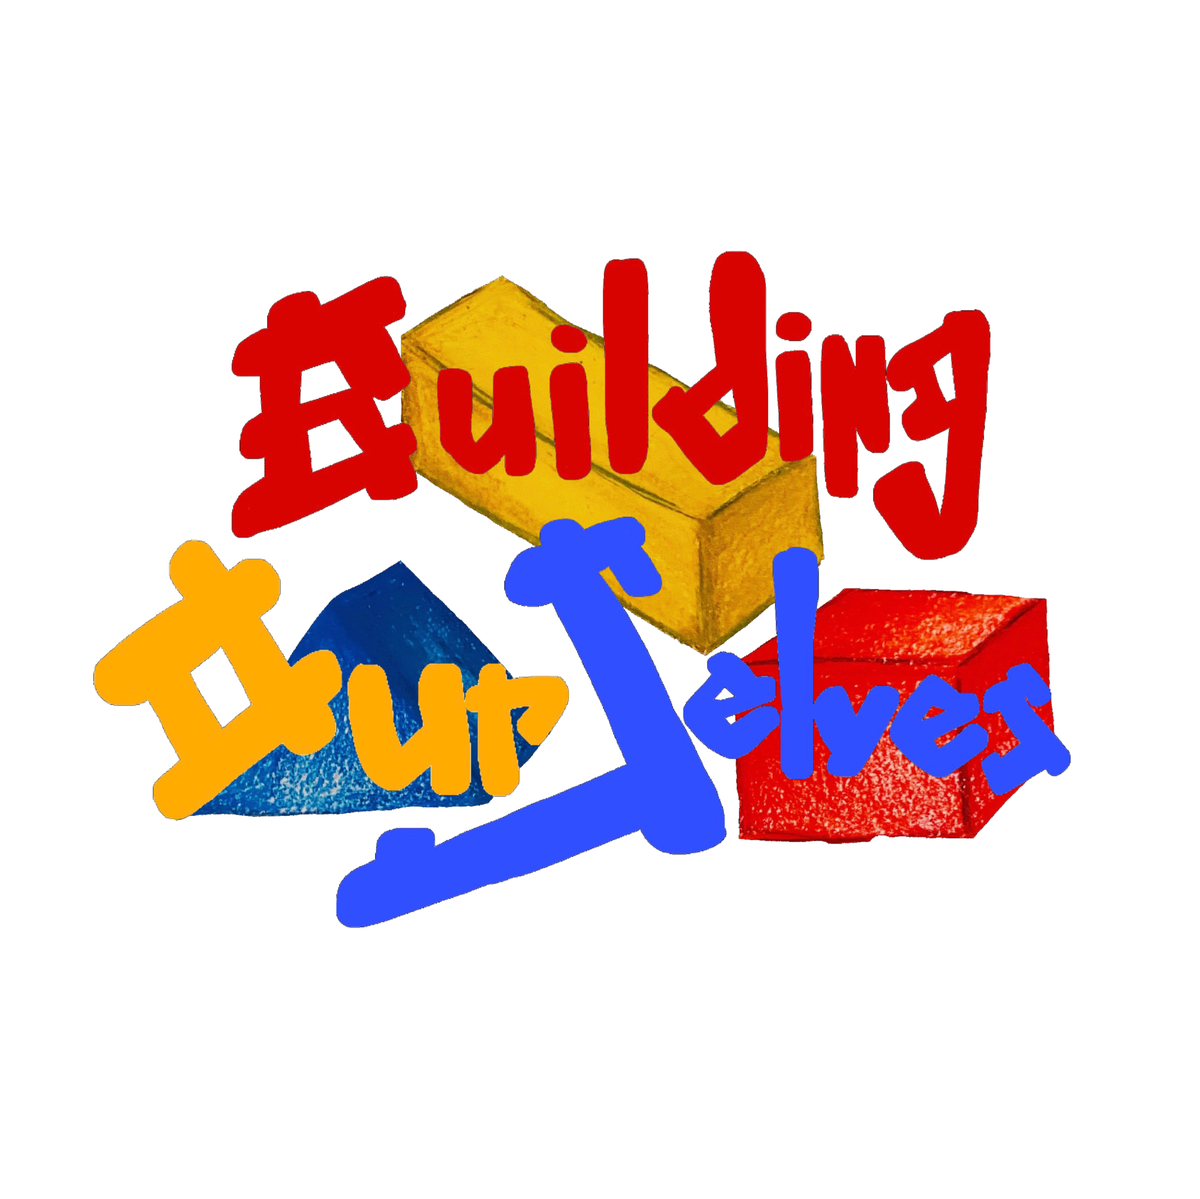 Building OurSelves Sticker